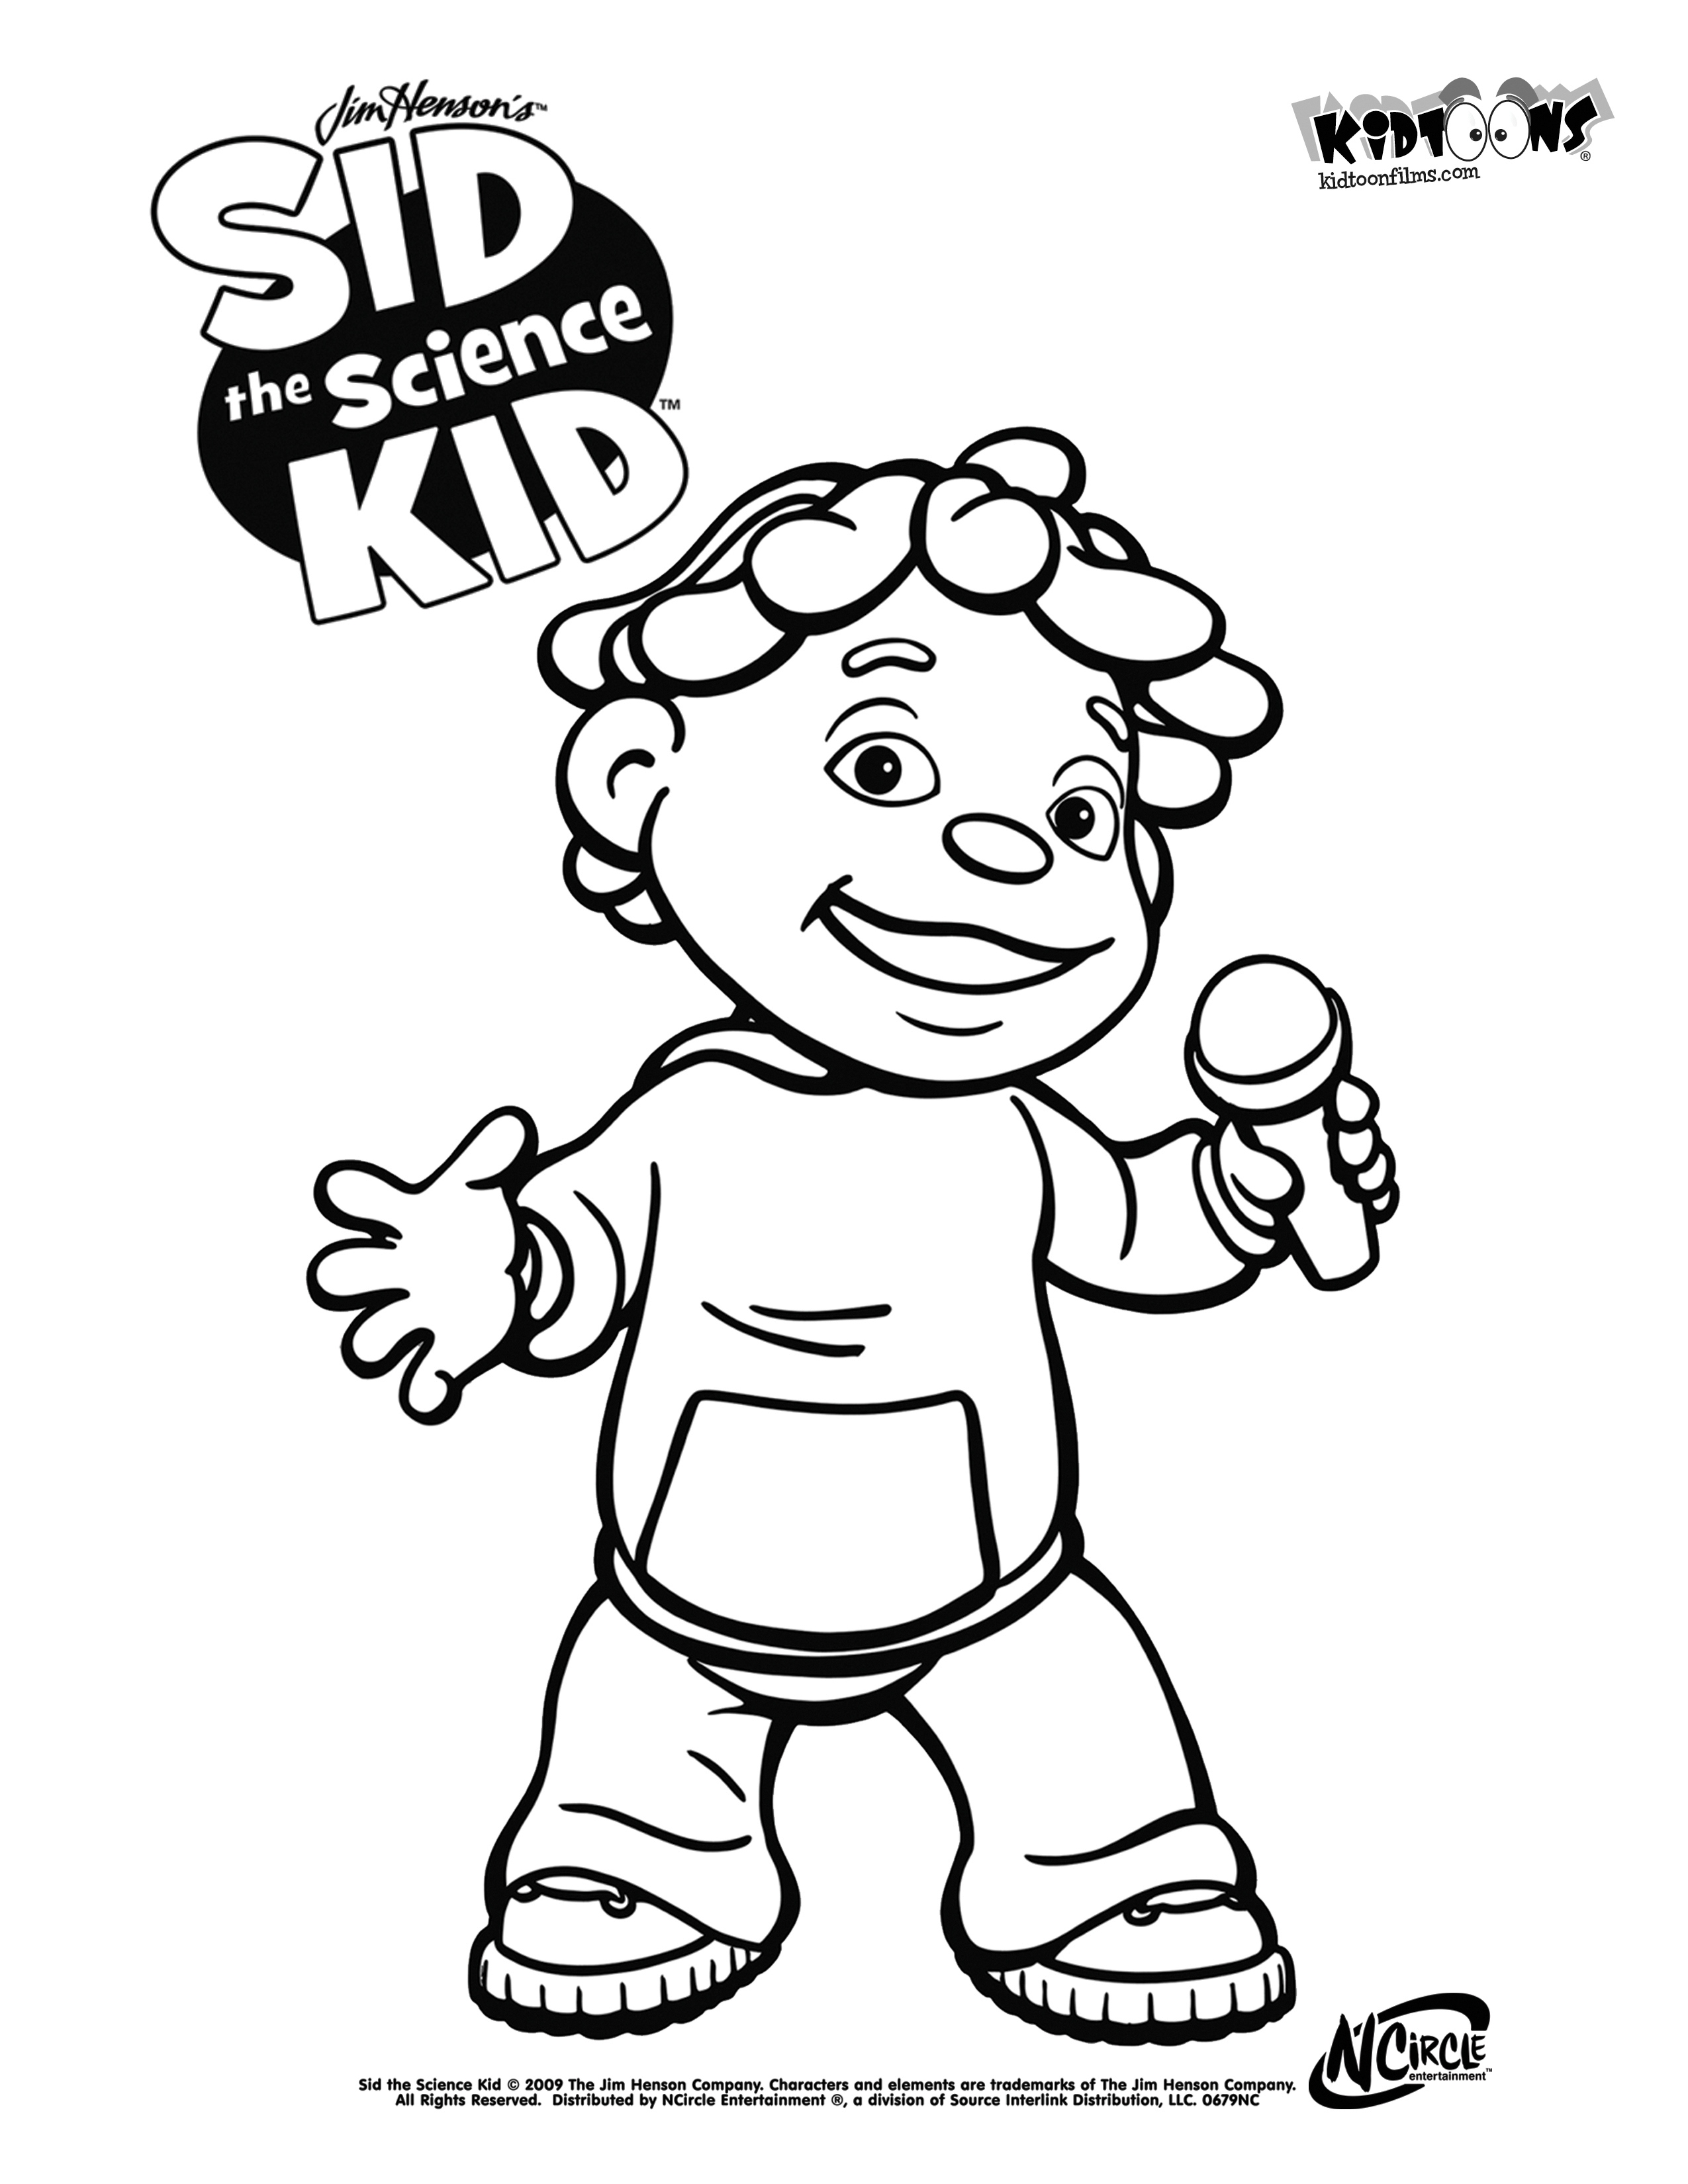 science coloring sheet science coloring pages science coloring sheet 1 1